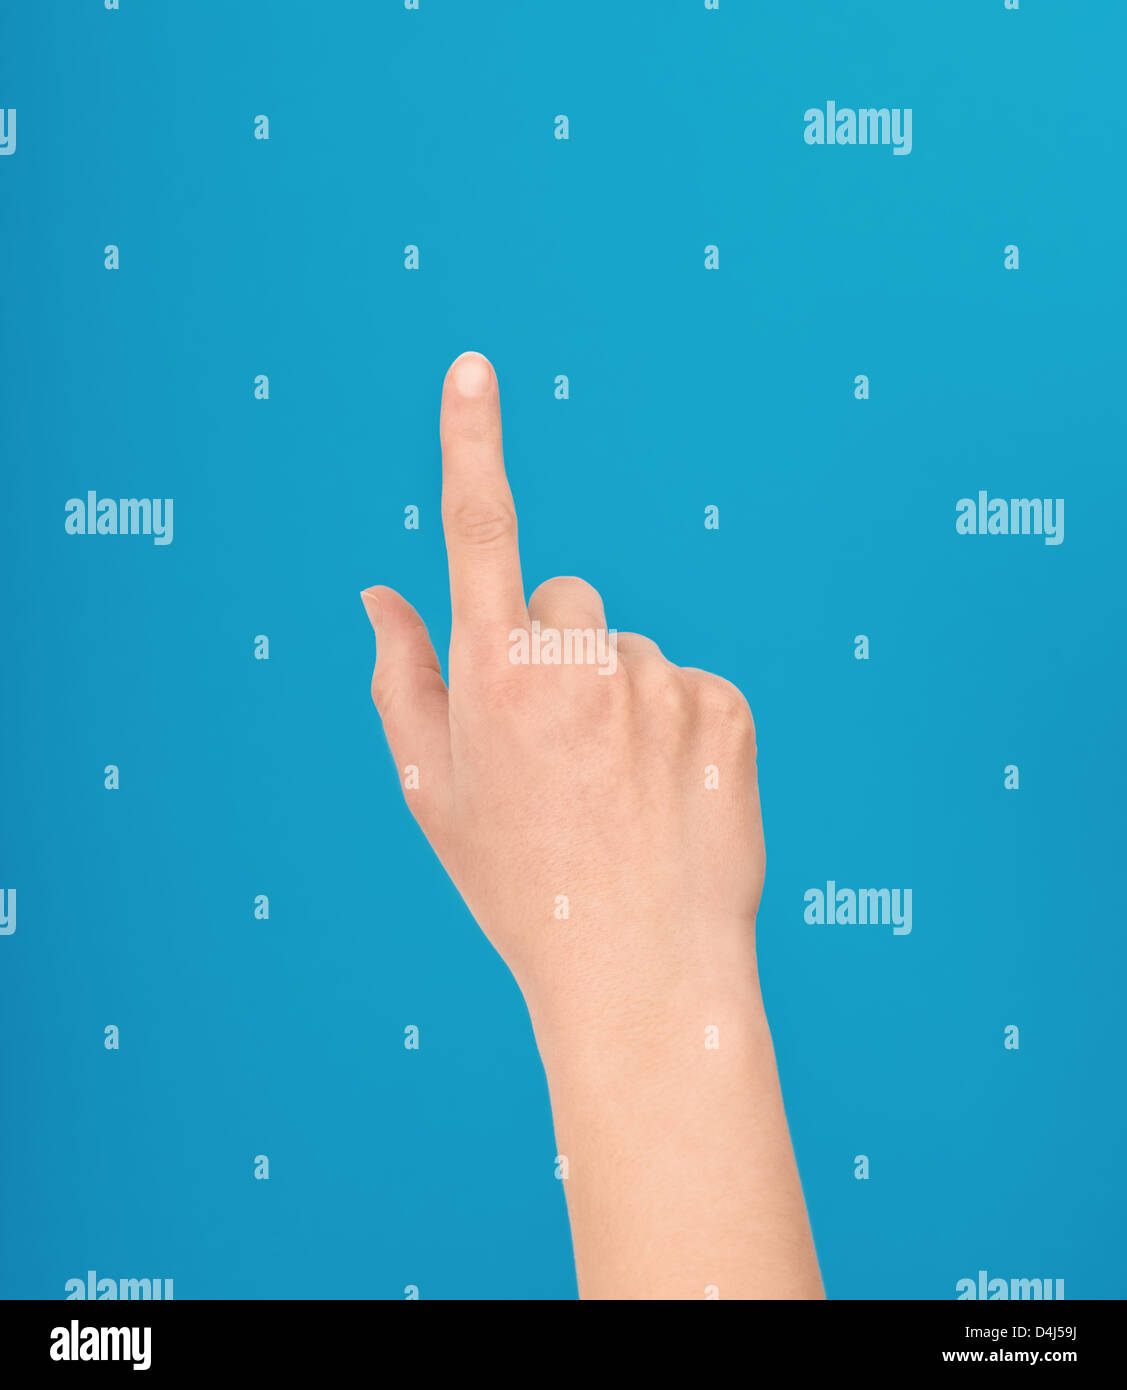 Hand making a touch gesture or touchscreen or a pointing with one finger isolated against a blue background - Stock Image